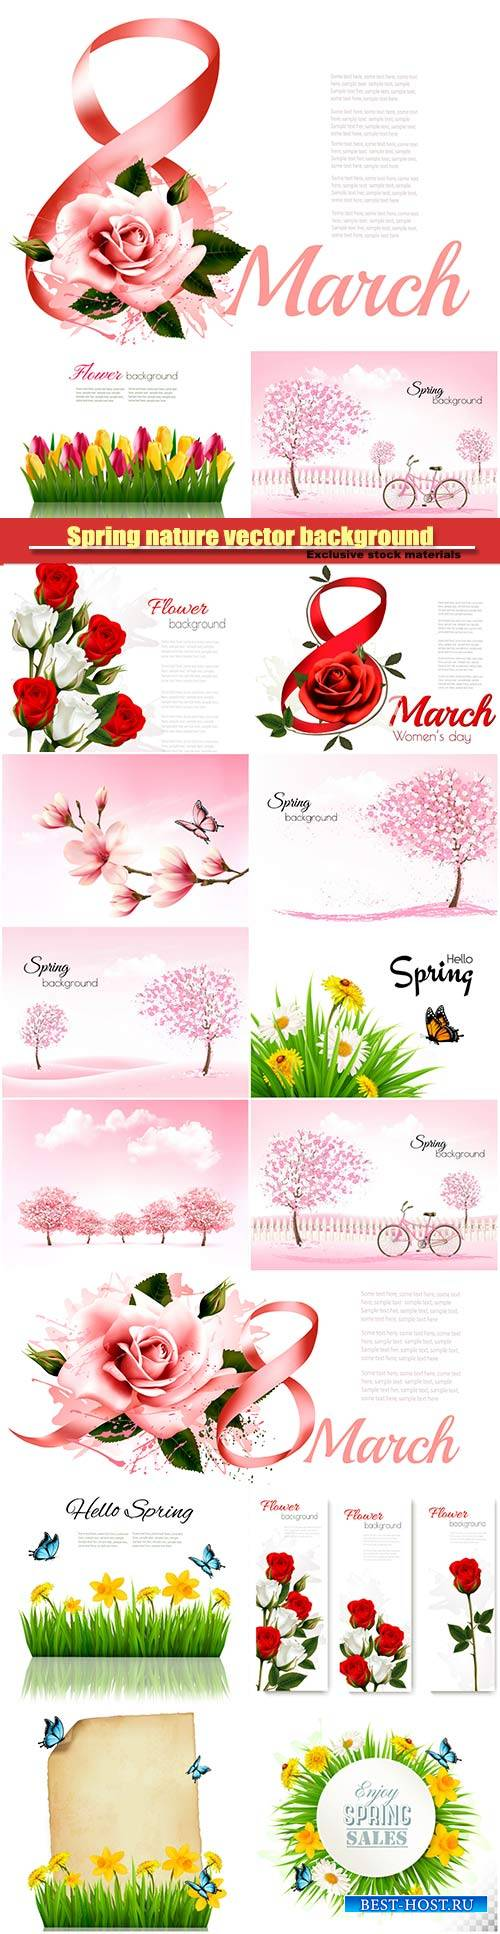 8th March illustration with rose, women's day, spring nature vector backgr ...